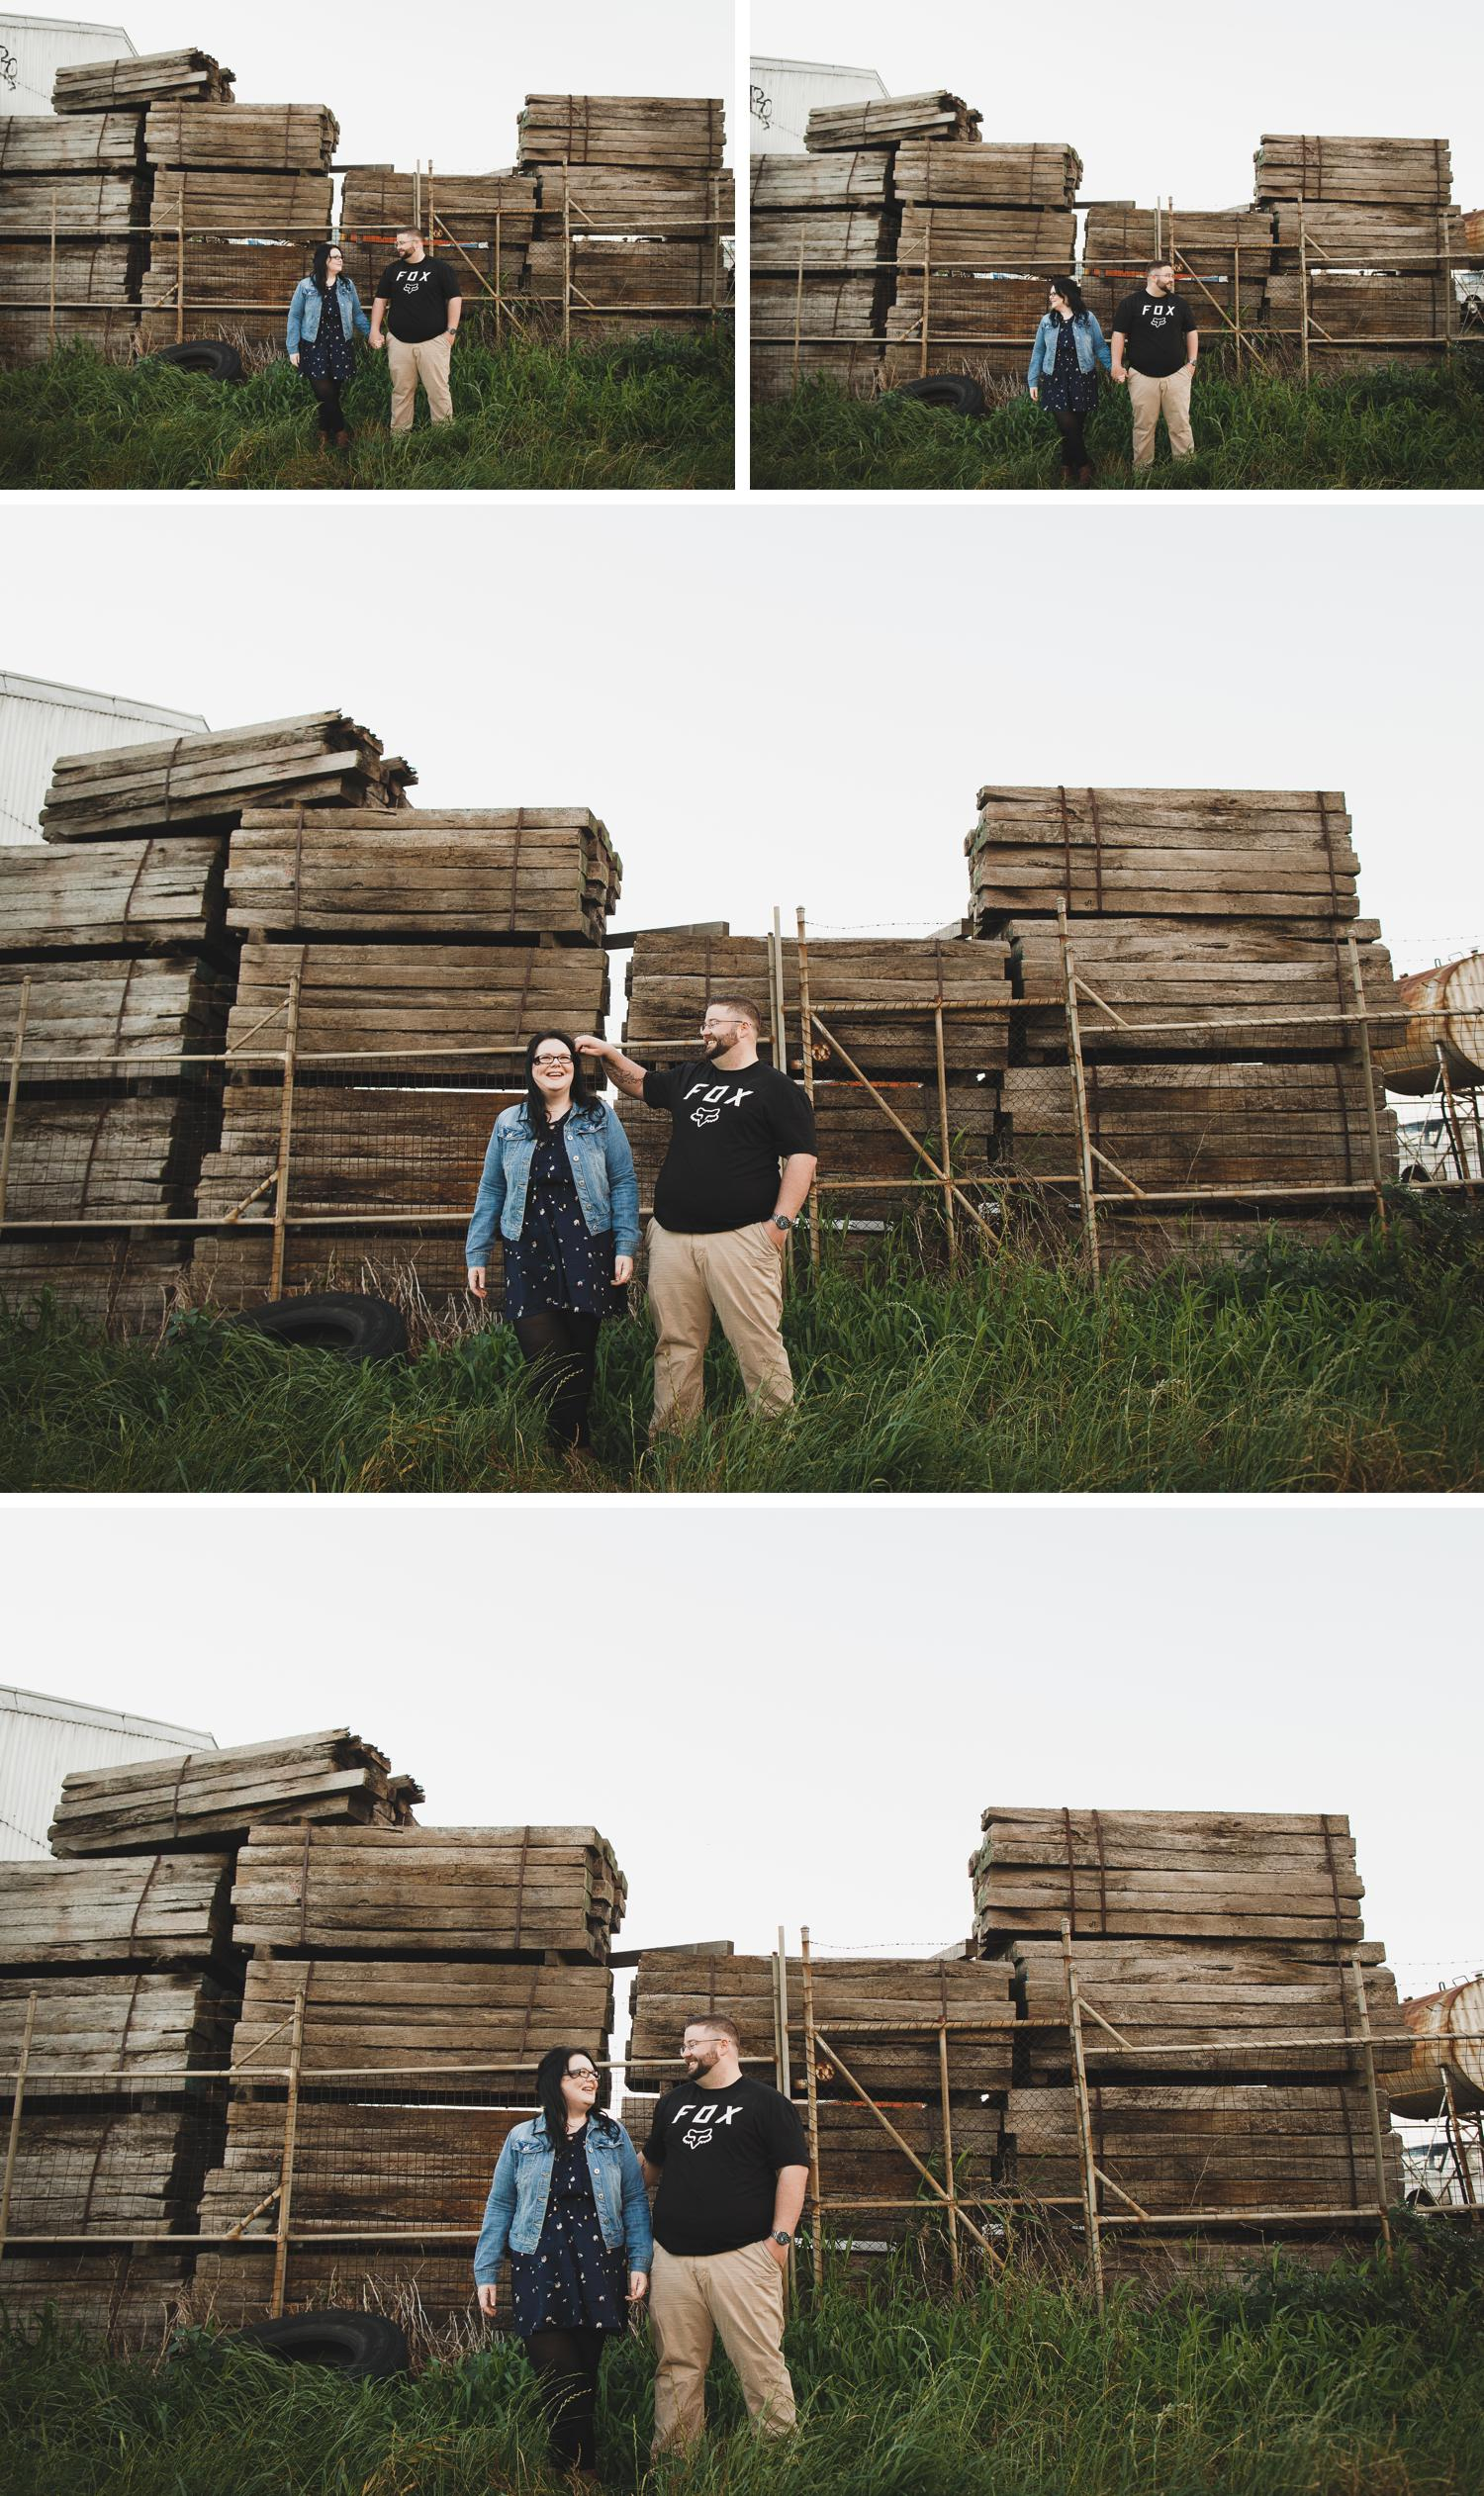 Junkyard Engagement Shoot, Railway Shoot Engagement, Momos Traralgon Engagement Shoot by Danae Studios